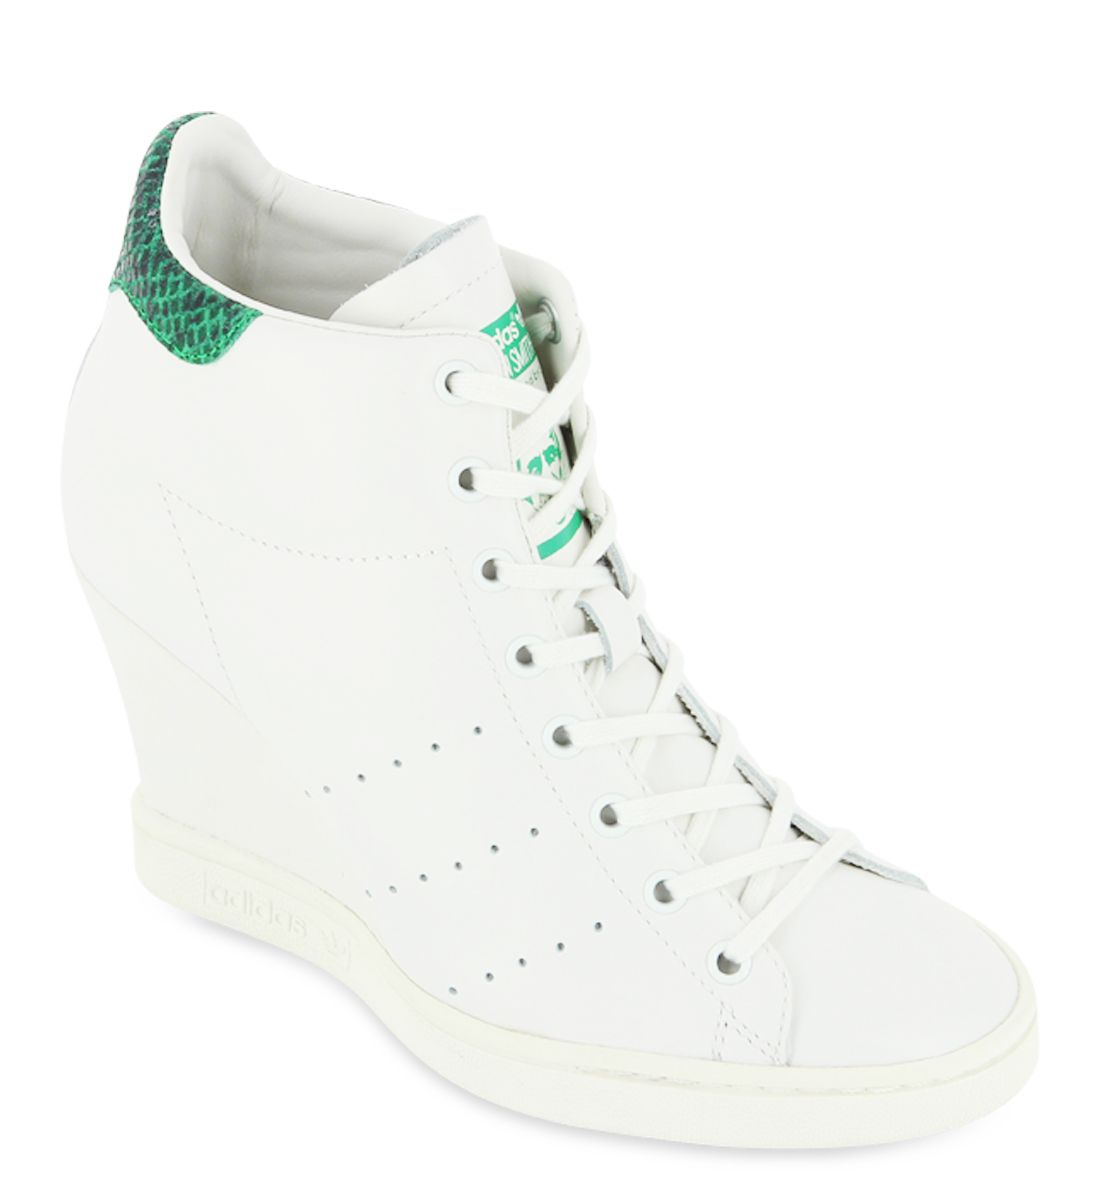 Baskets compensées Stan Smith Adidas Originals Blanc - Galerieslafayette.com